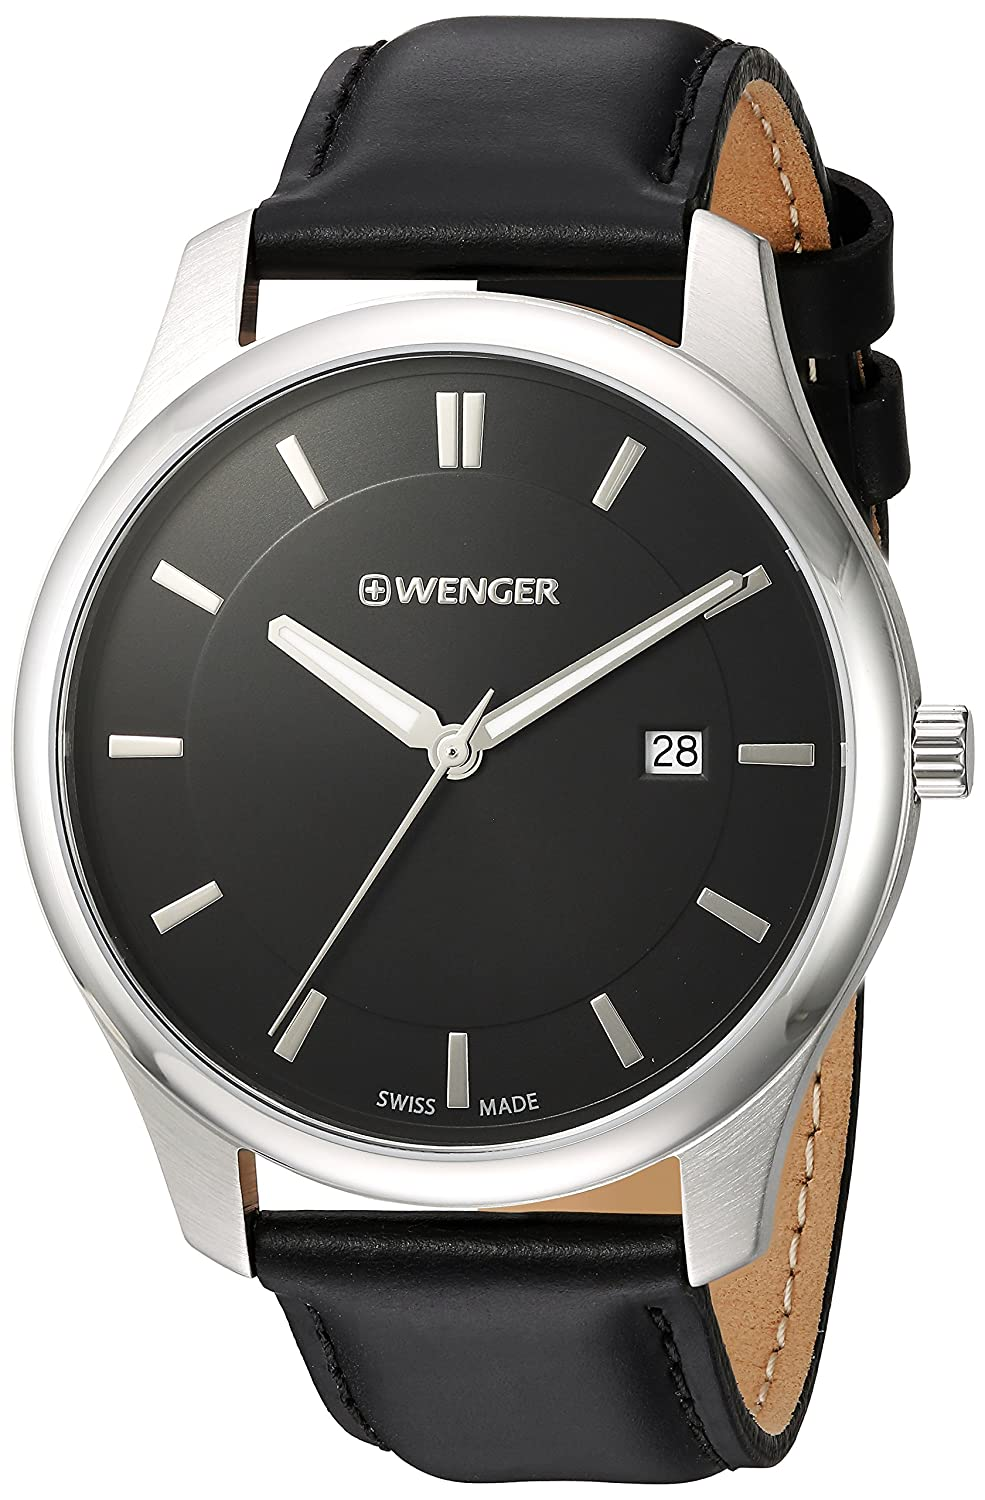 Amazon.com: Wenger Mens City Classic Stainless Steel Swiss-Quartz Watch with Leather Calfskin Strap, Black, 20 (Model: 01.1441.101: Watches